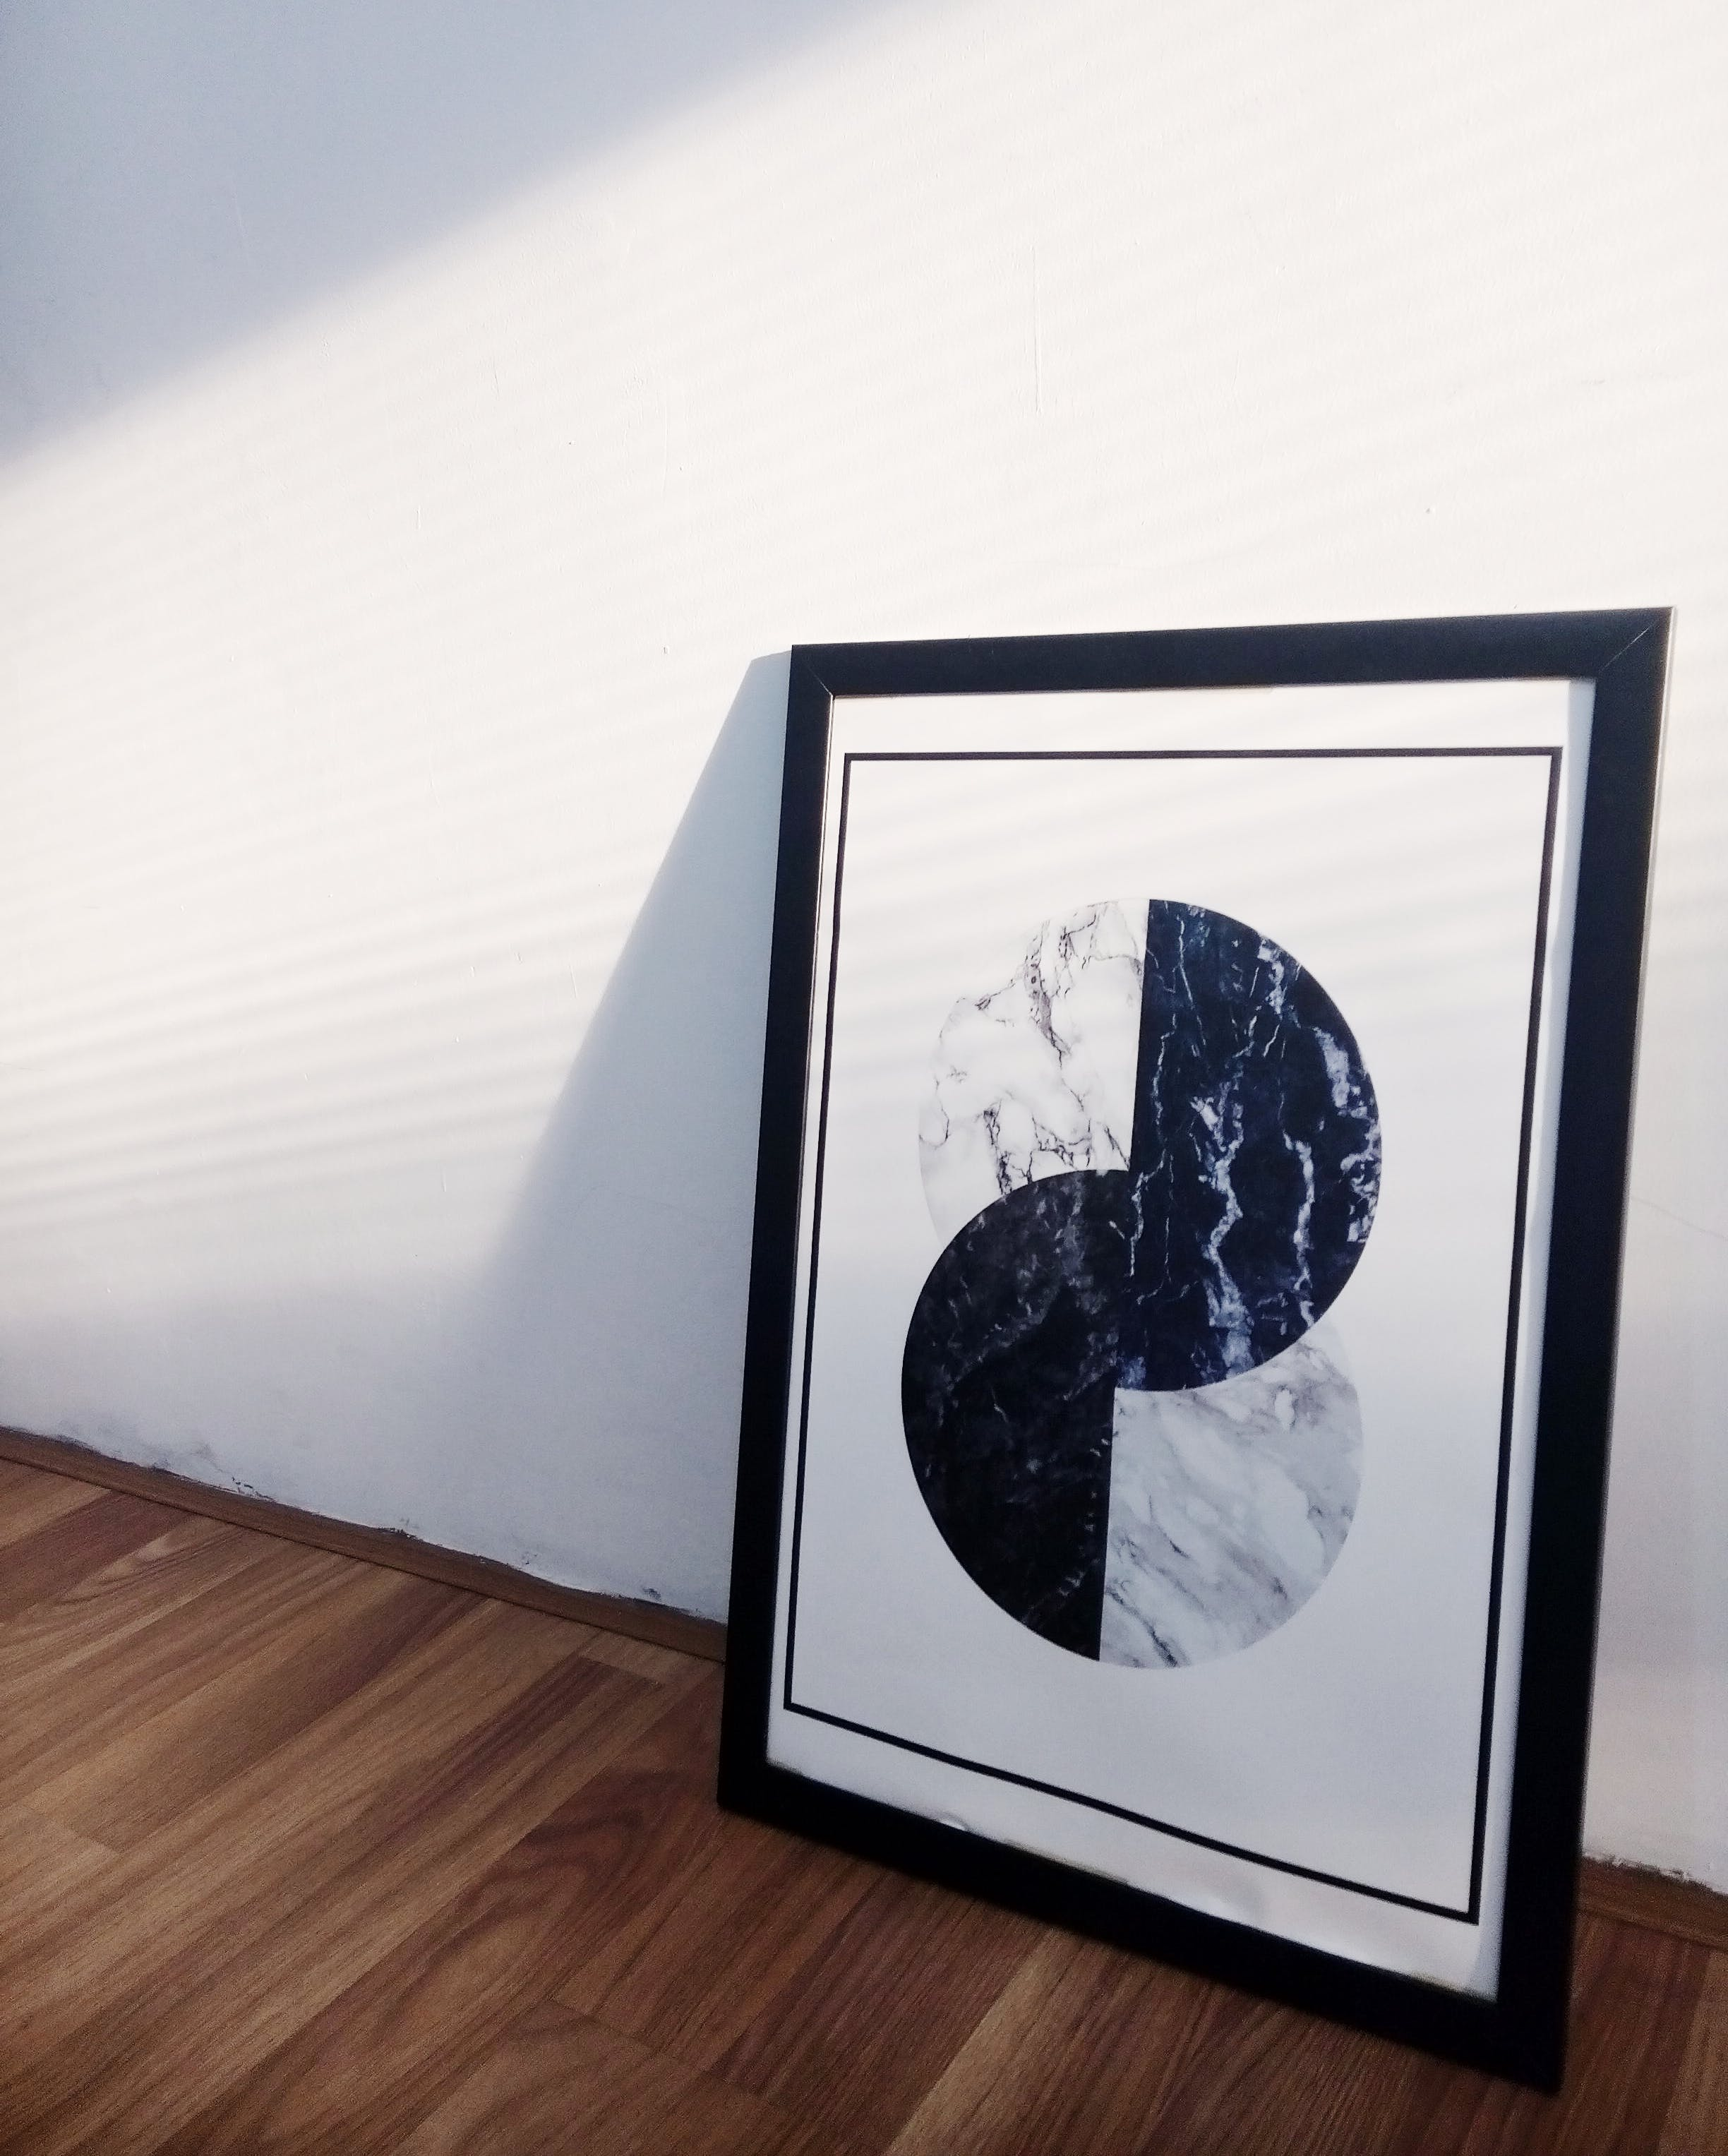 Black and White Abstract Painting on Wall